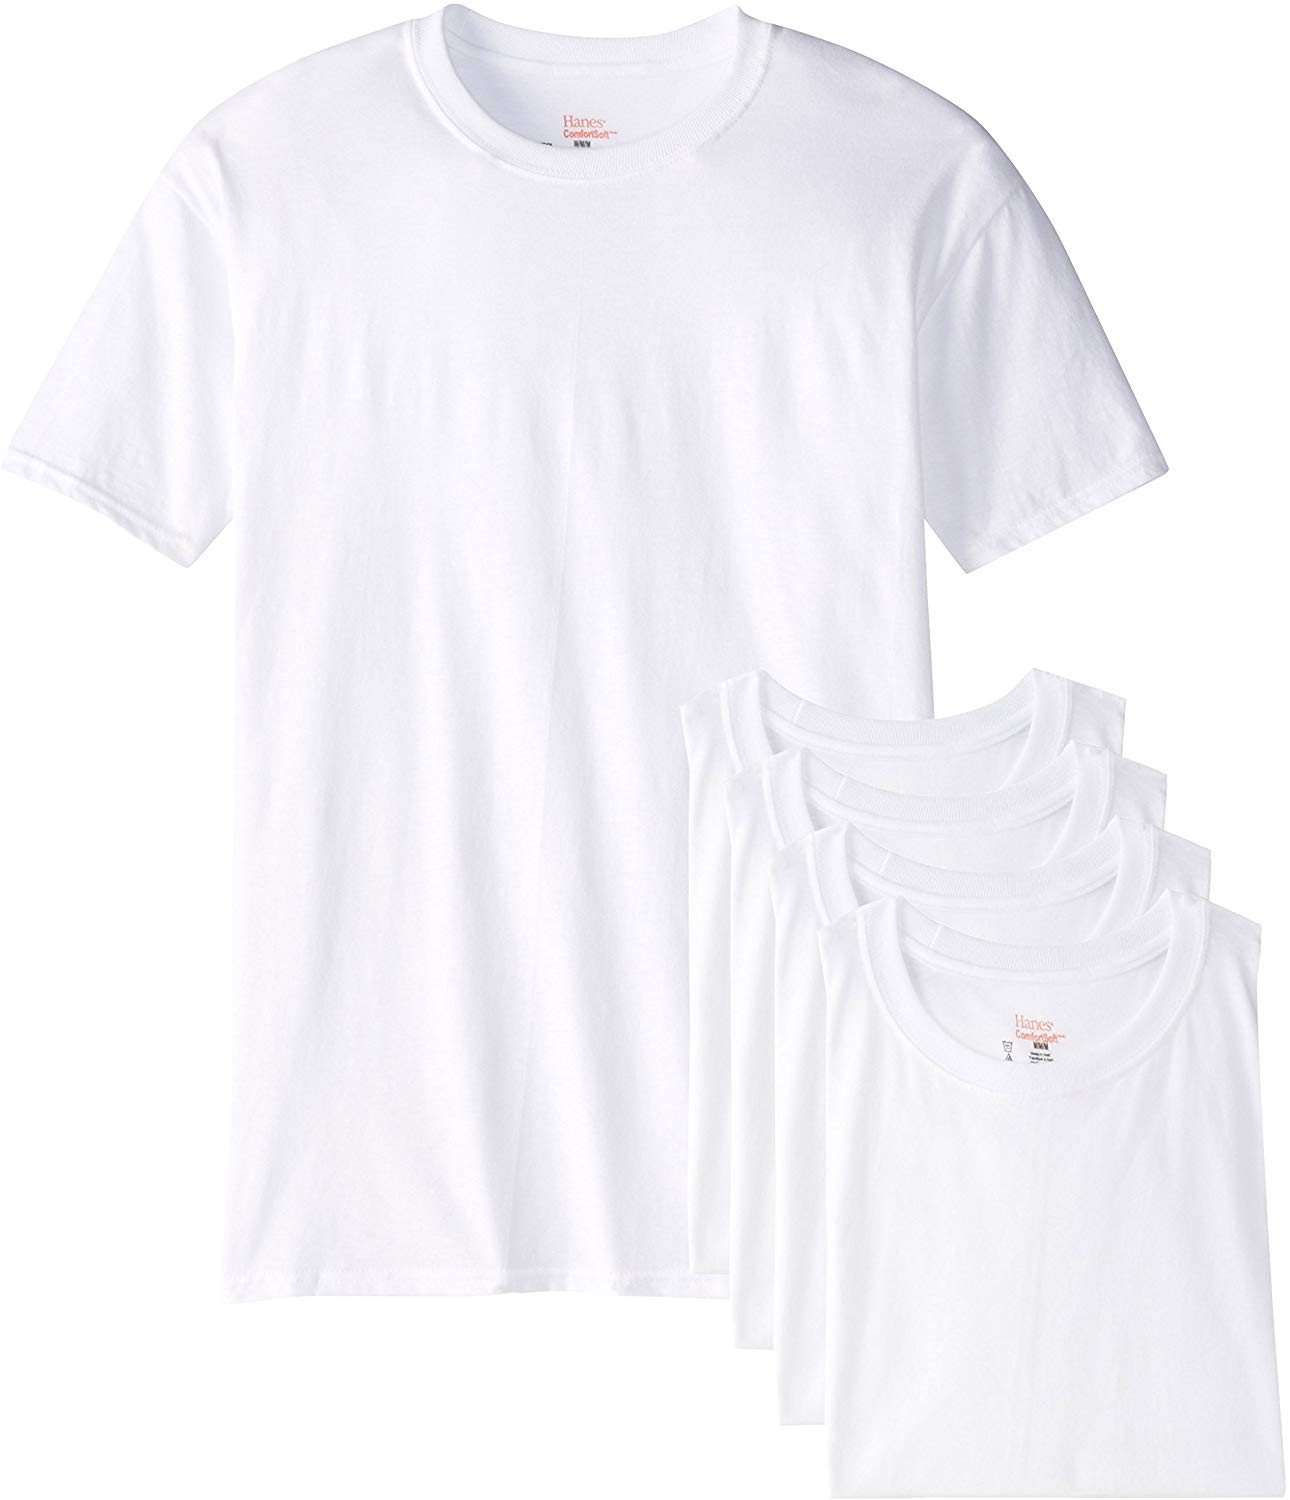 2020 New    Men's 5-Pack FreshIQ Big Crew T-Shirts Short  Casual  Cotton  O-Neck